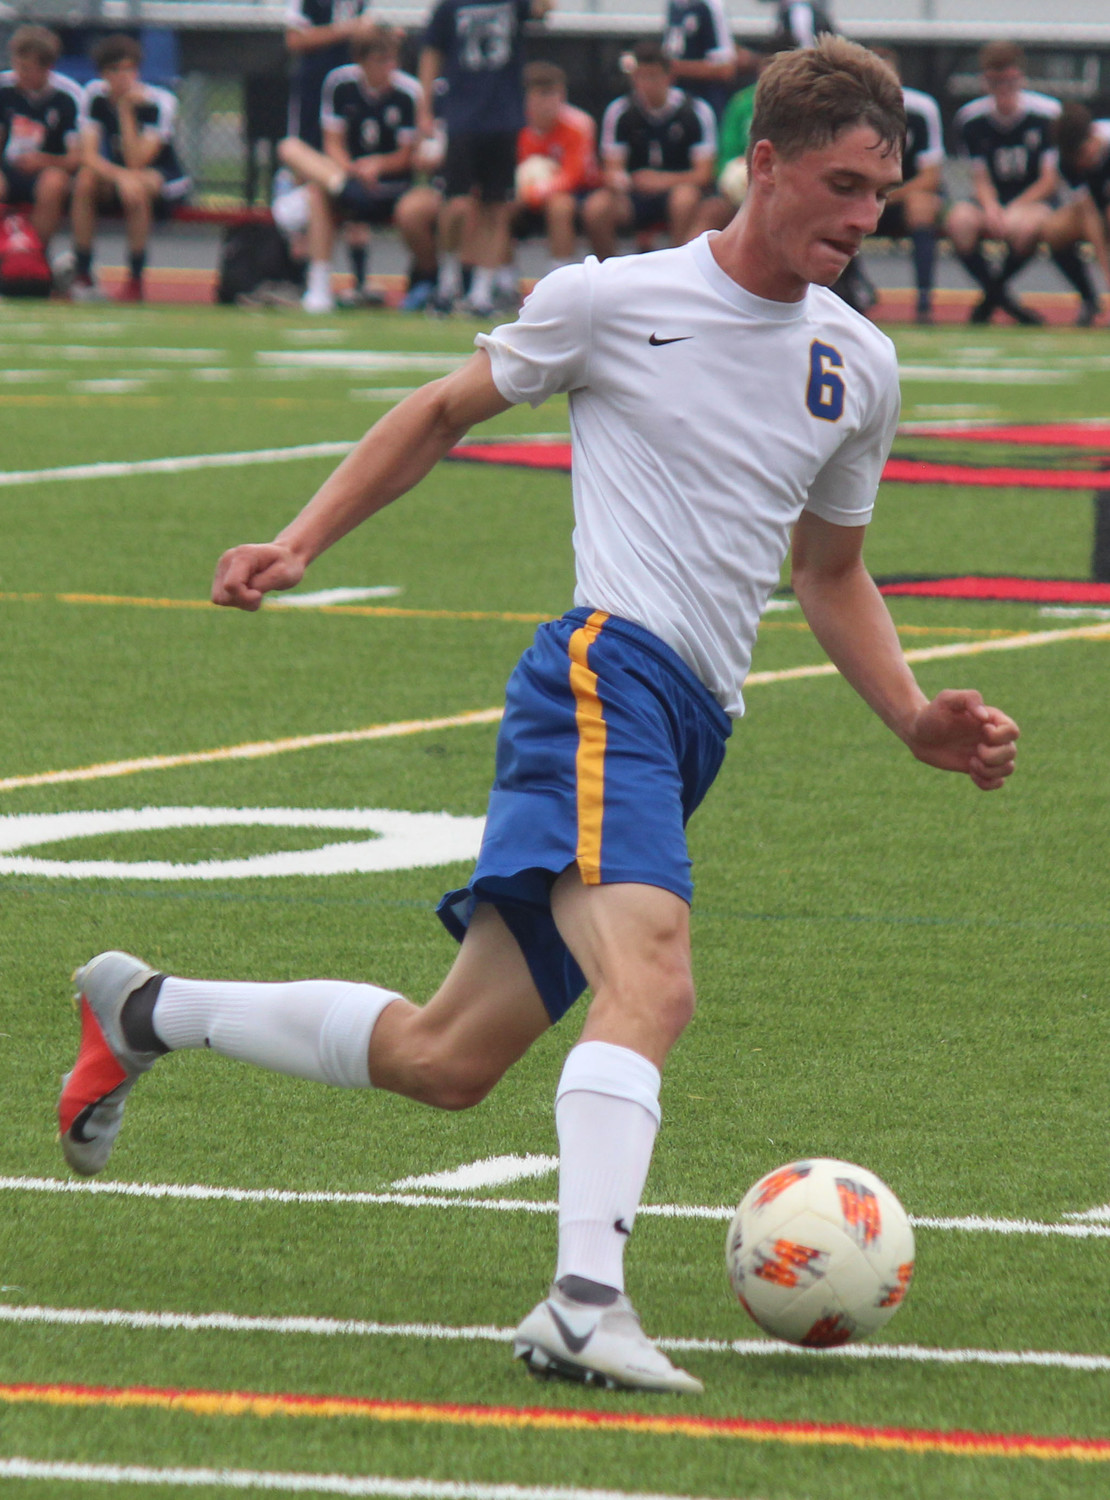 Brady Keyser with control of the ball Sept. 1 vs. Wyomissing.